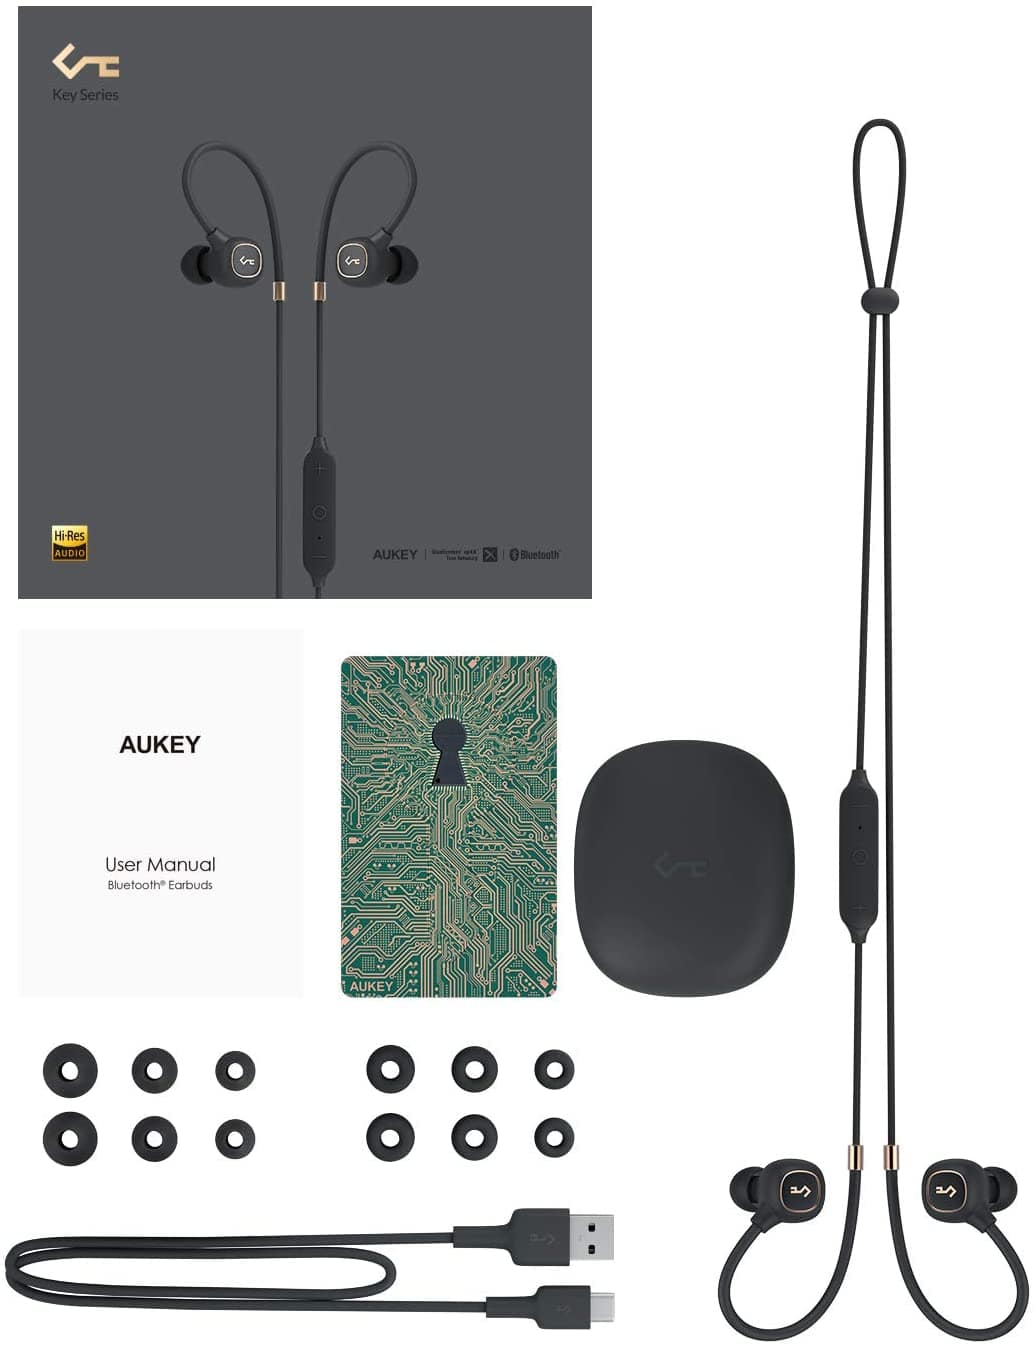 AUKEY Wireless Headphones Key Series B80 Bluetooth 5.0 Hybrid Driver System, aptX Low Latency, IPX6, USB-C Charging, 8h Playtime and in-line Mic (Black) $35.39